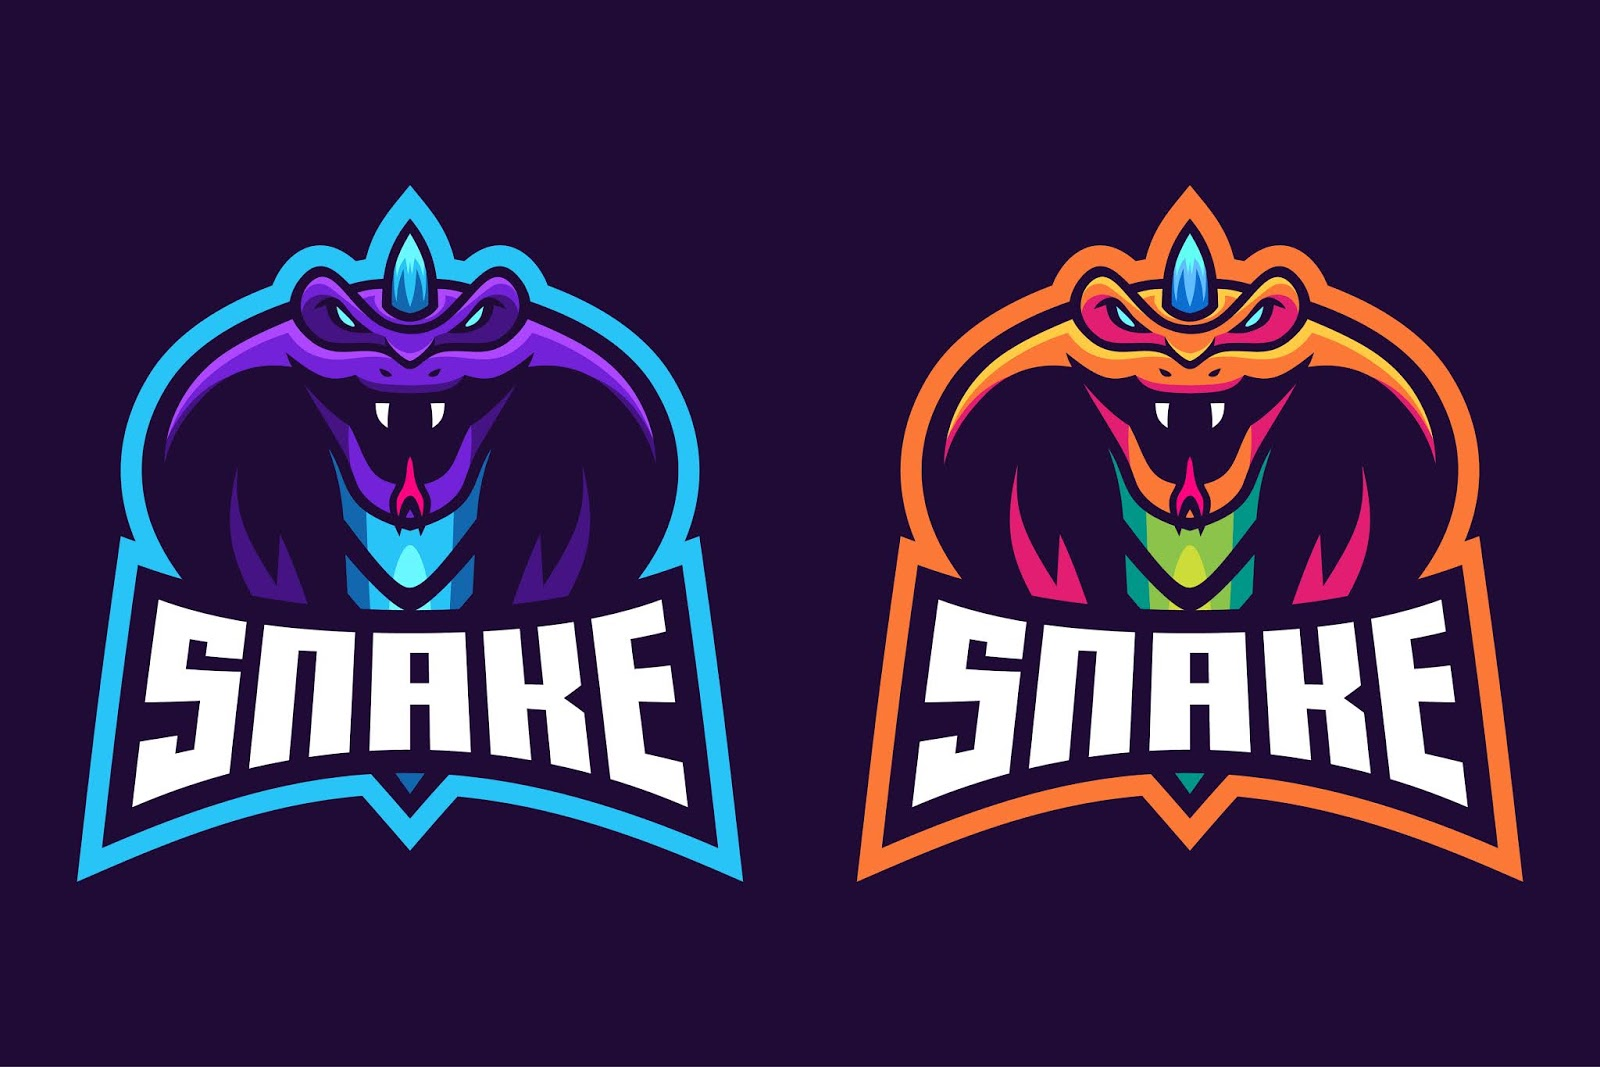 Snake With Horn Esport Logo Design Free Download Vector CDR, AI, EPS and PNG Formats